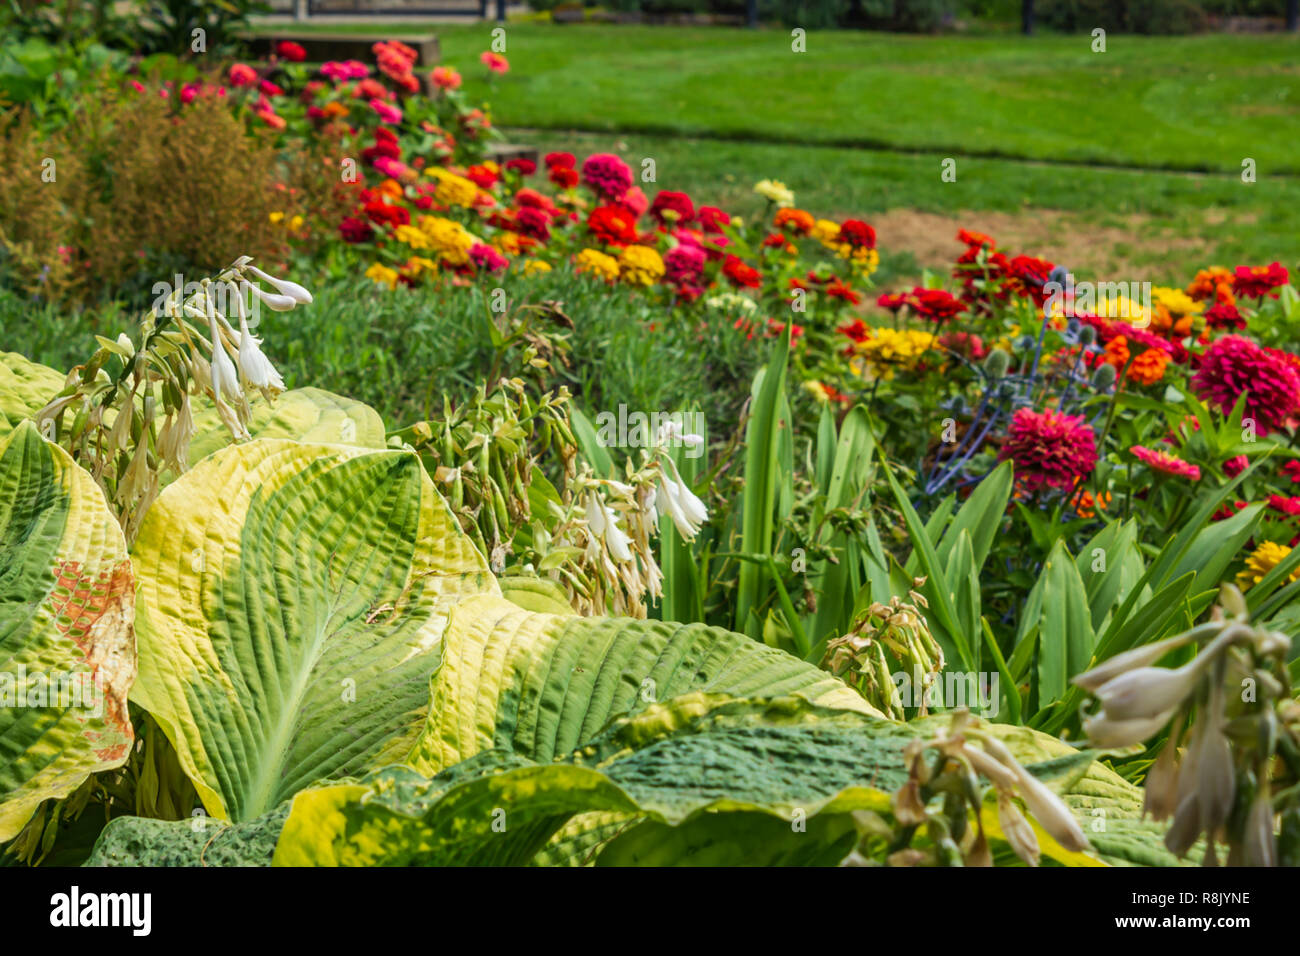 Hosta S And Elephant Ears In Colorful Garden Of Zinnias Stock